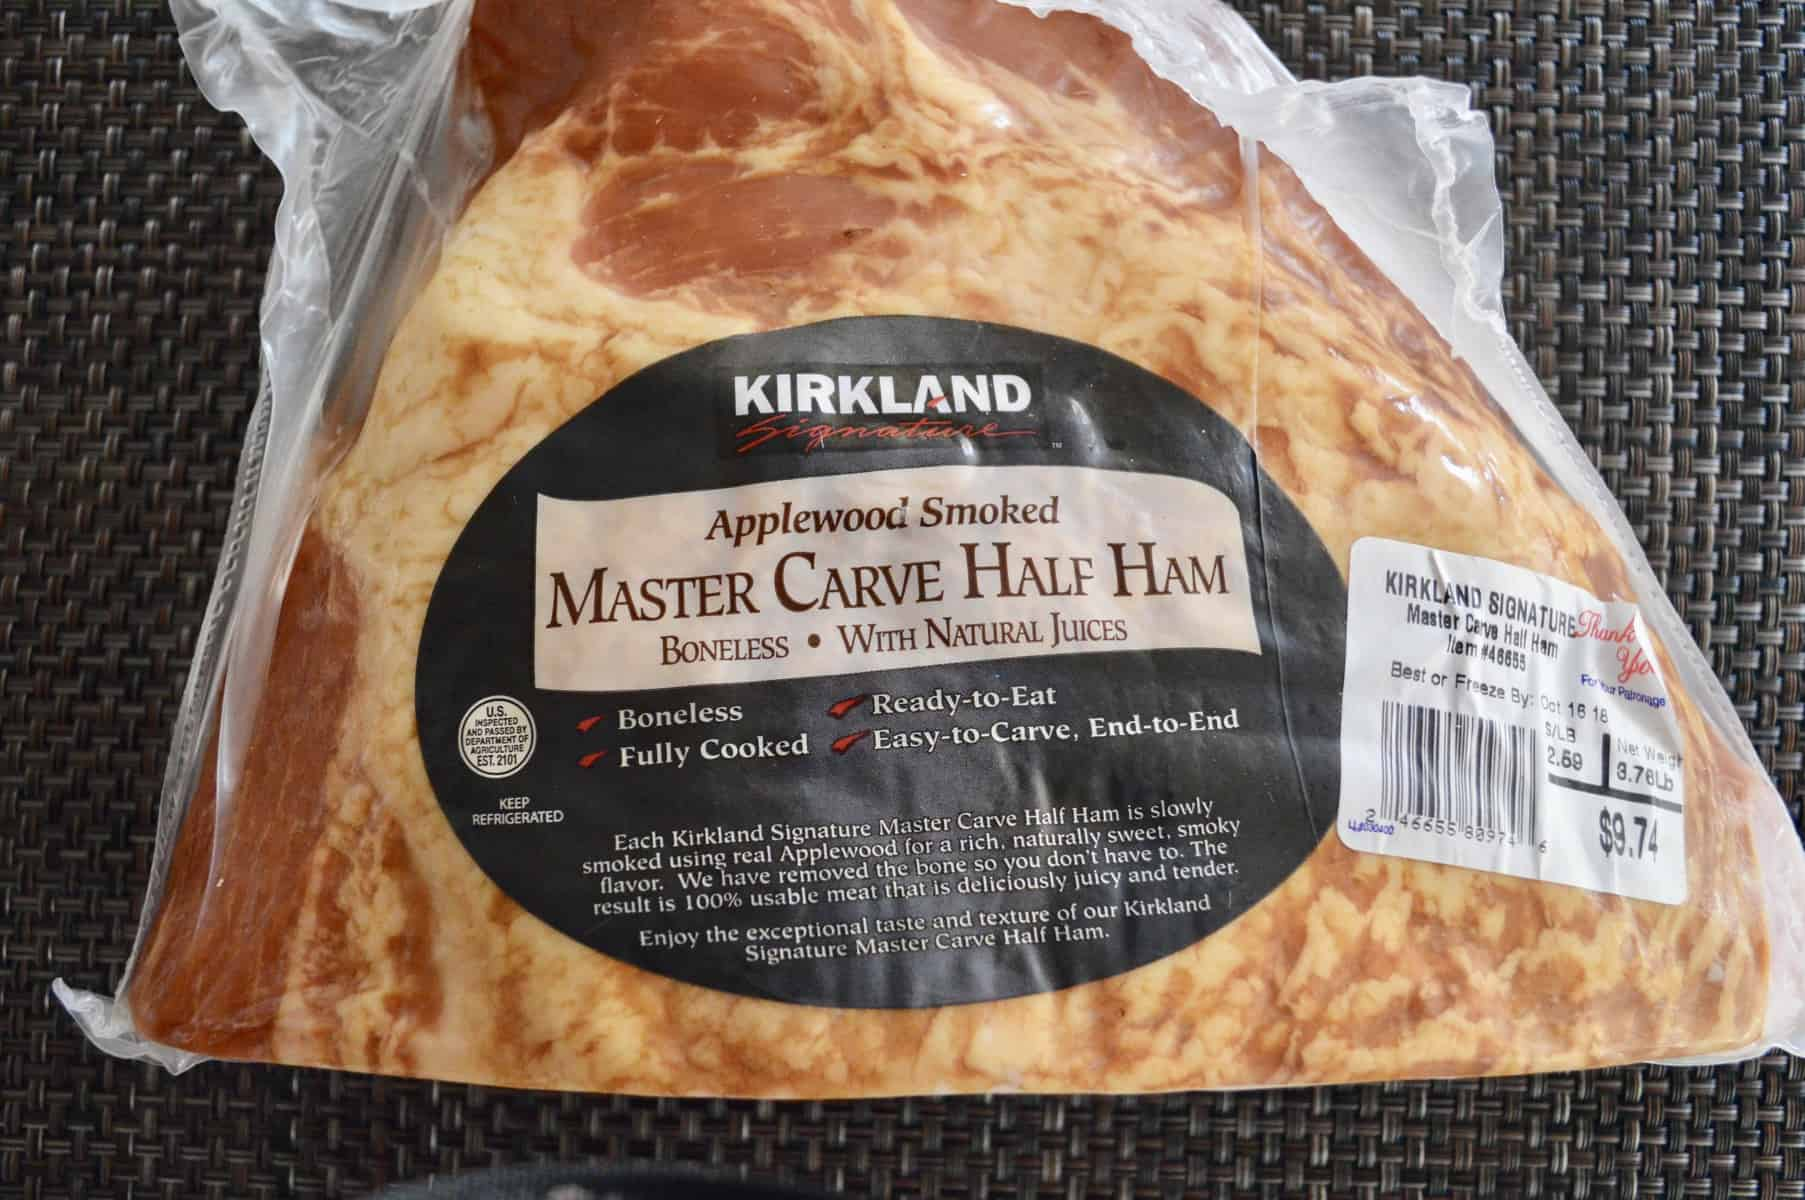 Kirkland Master Carve Half Ham on a brown place mat